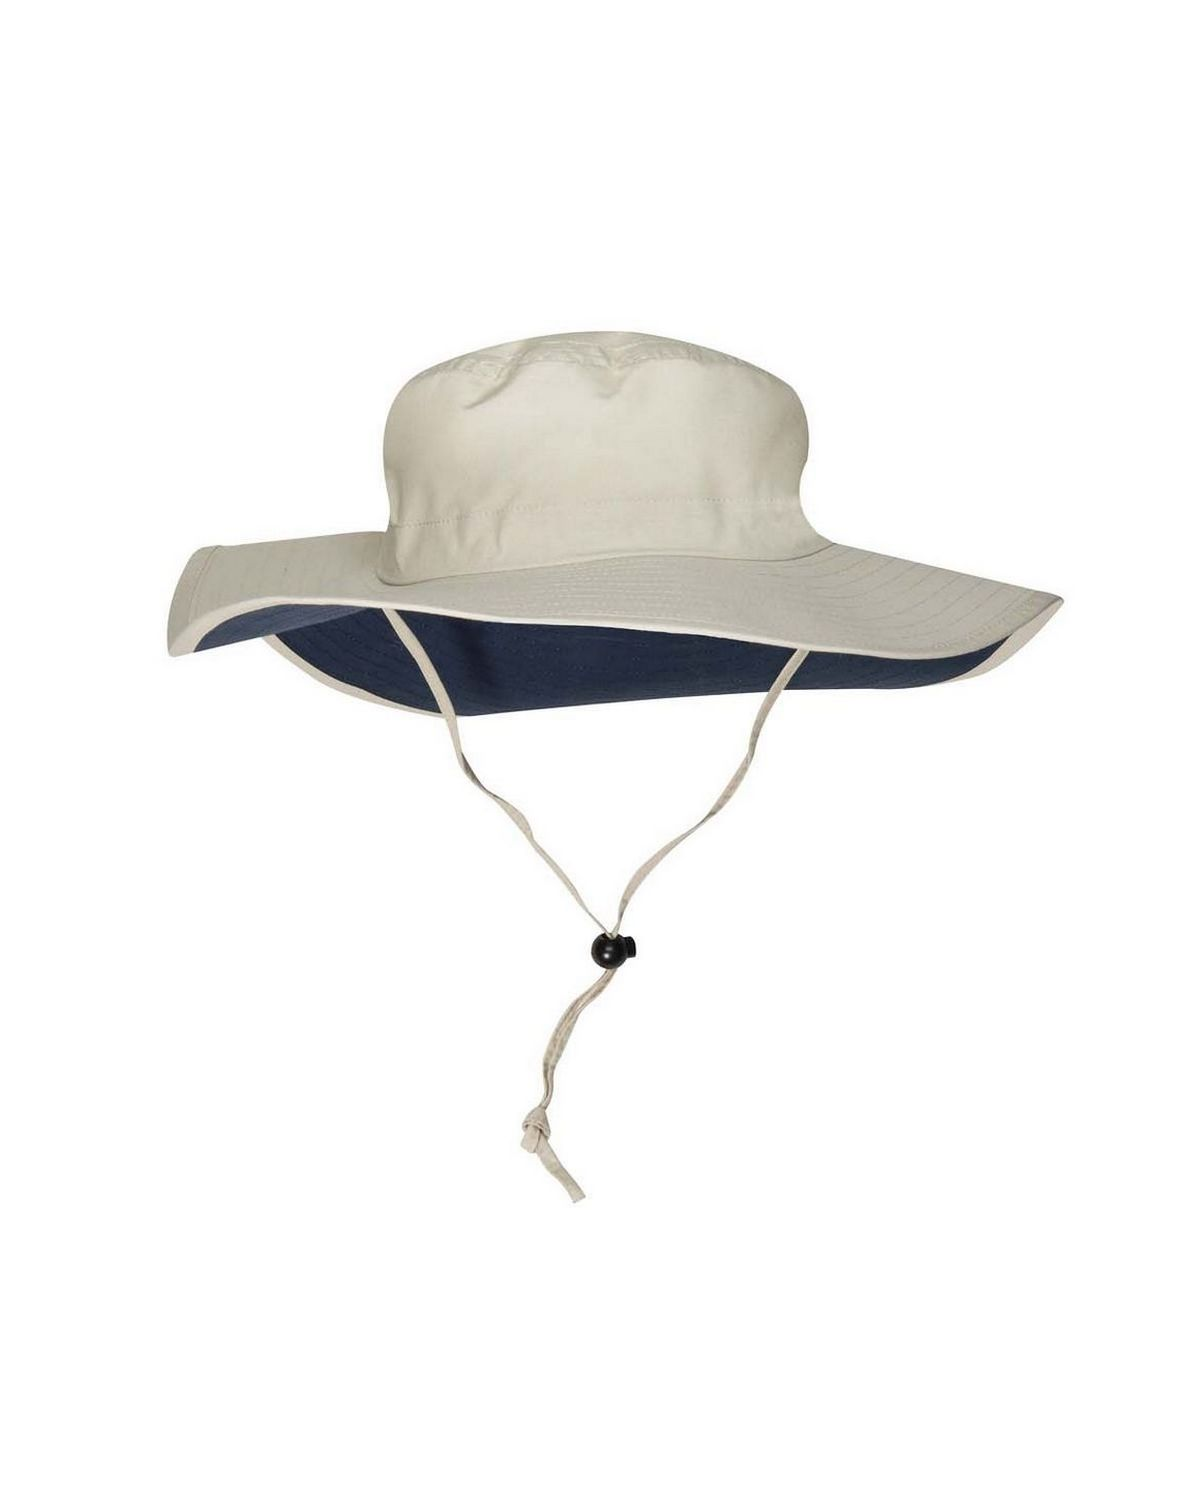 Adams XP101 UV Guide Style Bucket Unisex Hat